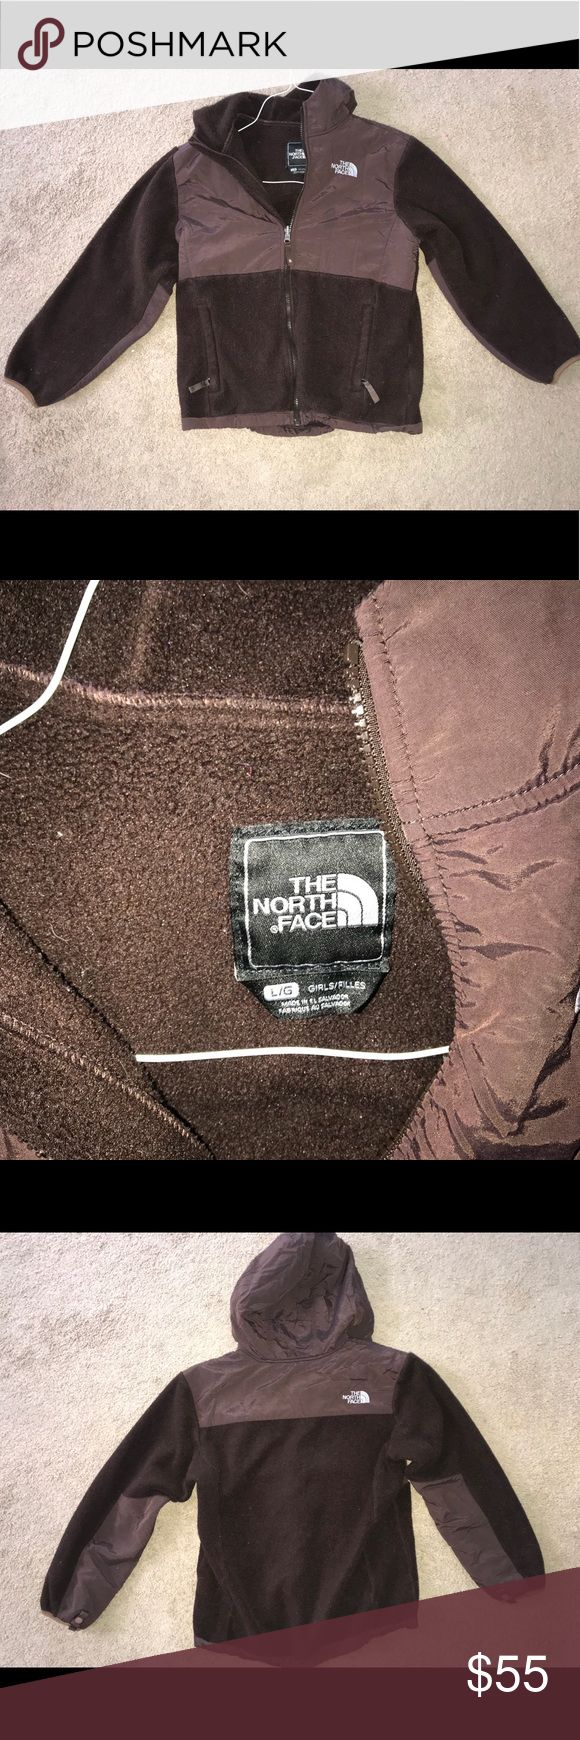 Girls North Face Jacket Zip up jacket, very warm and cozy. It has 2 side pockets. It's excellent used condition. Not worn often because I have others so it was washed very carefully maybe once. The North Face Jackets & Coats